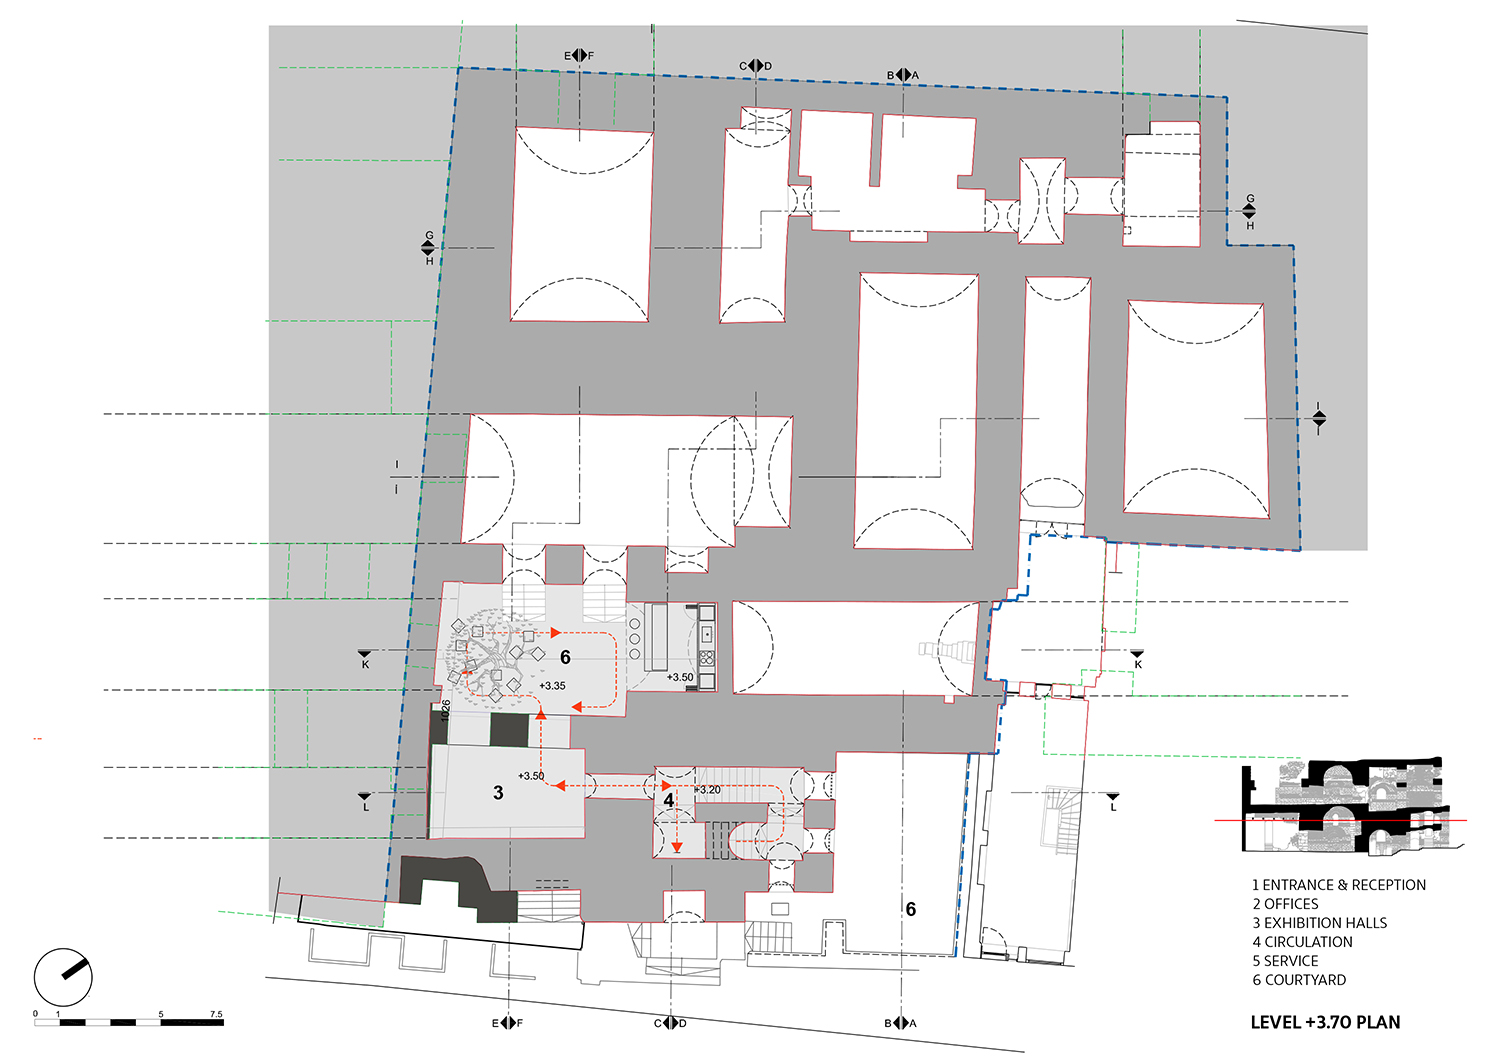 +370 Floor Plan TABANLIOGLU ARCHITECTS}